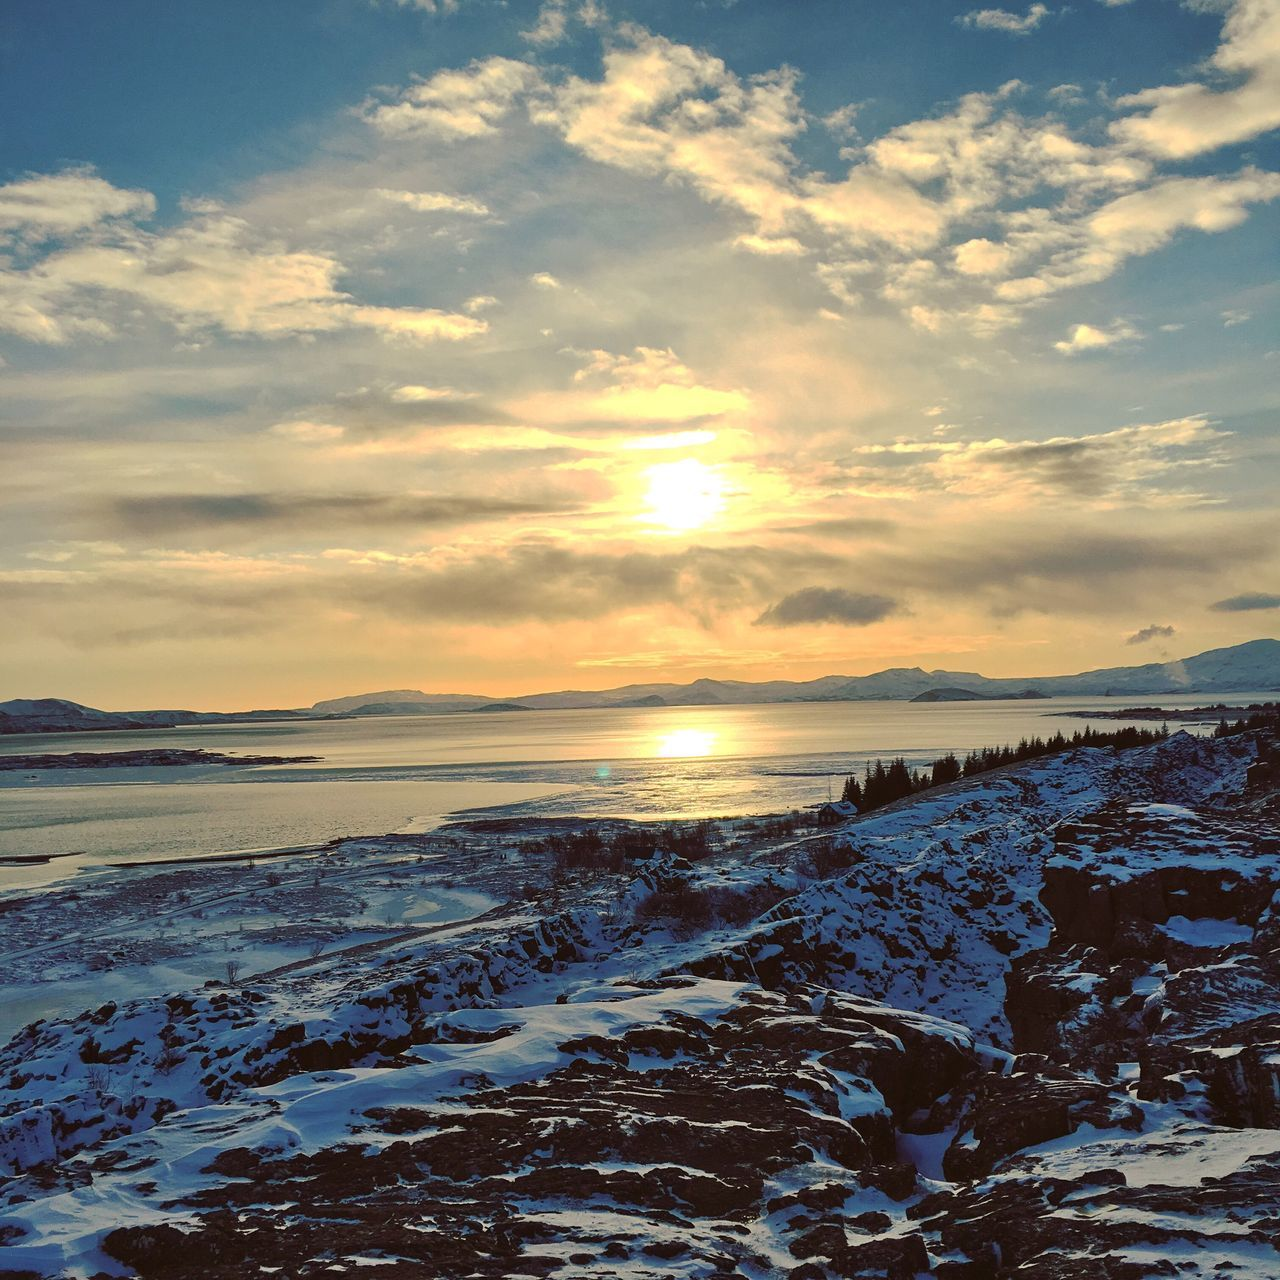 Thingvellir, Iceland Cold Temperature Snow Winter Sunset Beauty In Nature Nature Scenics Sky Tranquil Scene Tranquility Ice Weather Frozen Sun No People Outdoors Cloud - Sky Sea Cold Landscape Iceland Reykjavik Thingvellir National Park EyeEm Nature Lover Capture The Moment EyeEmNewHere